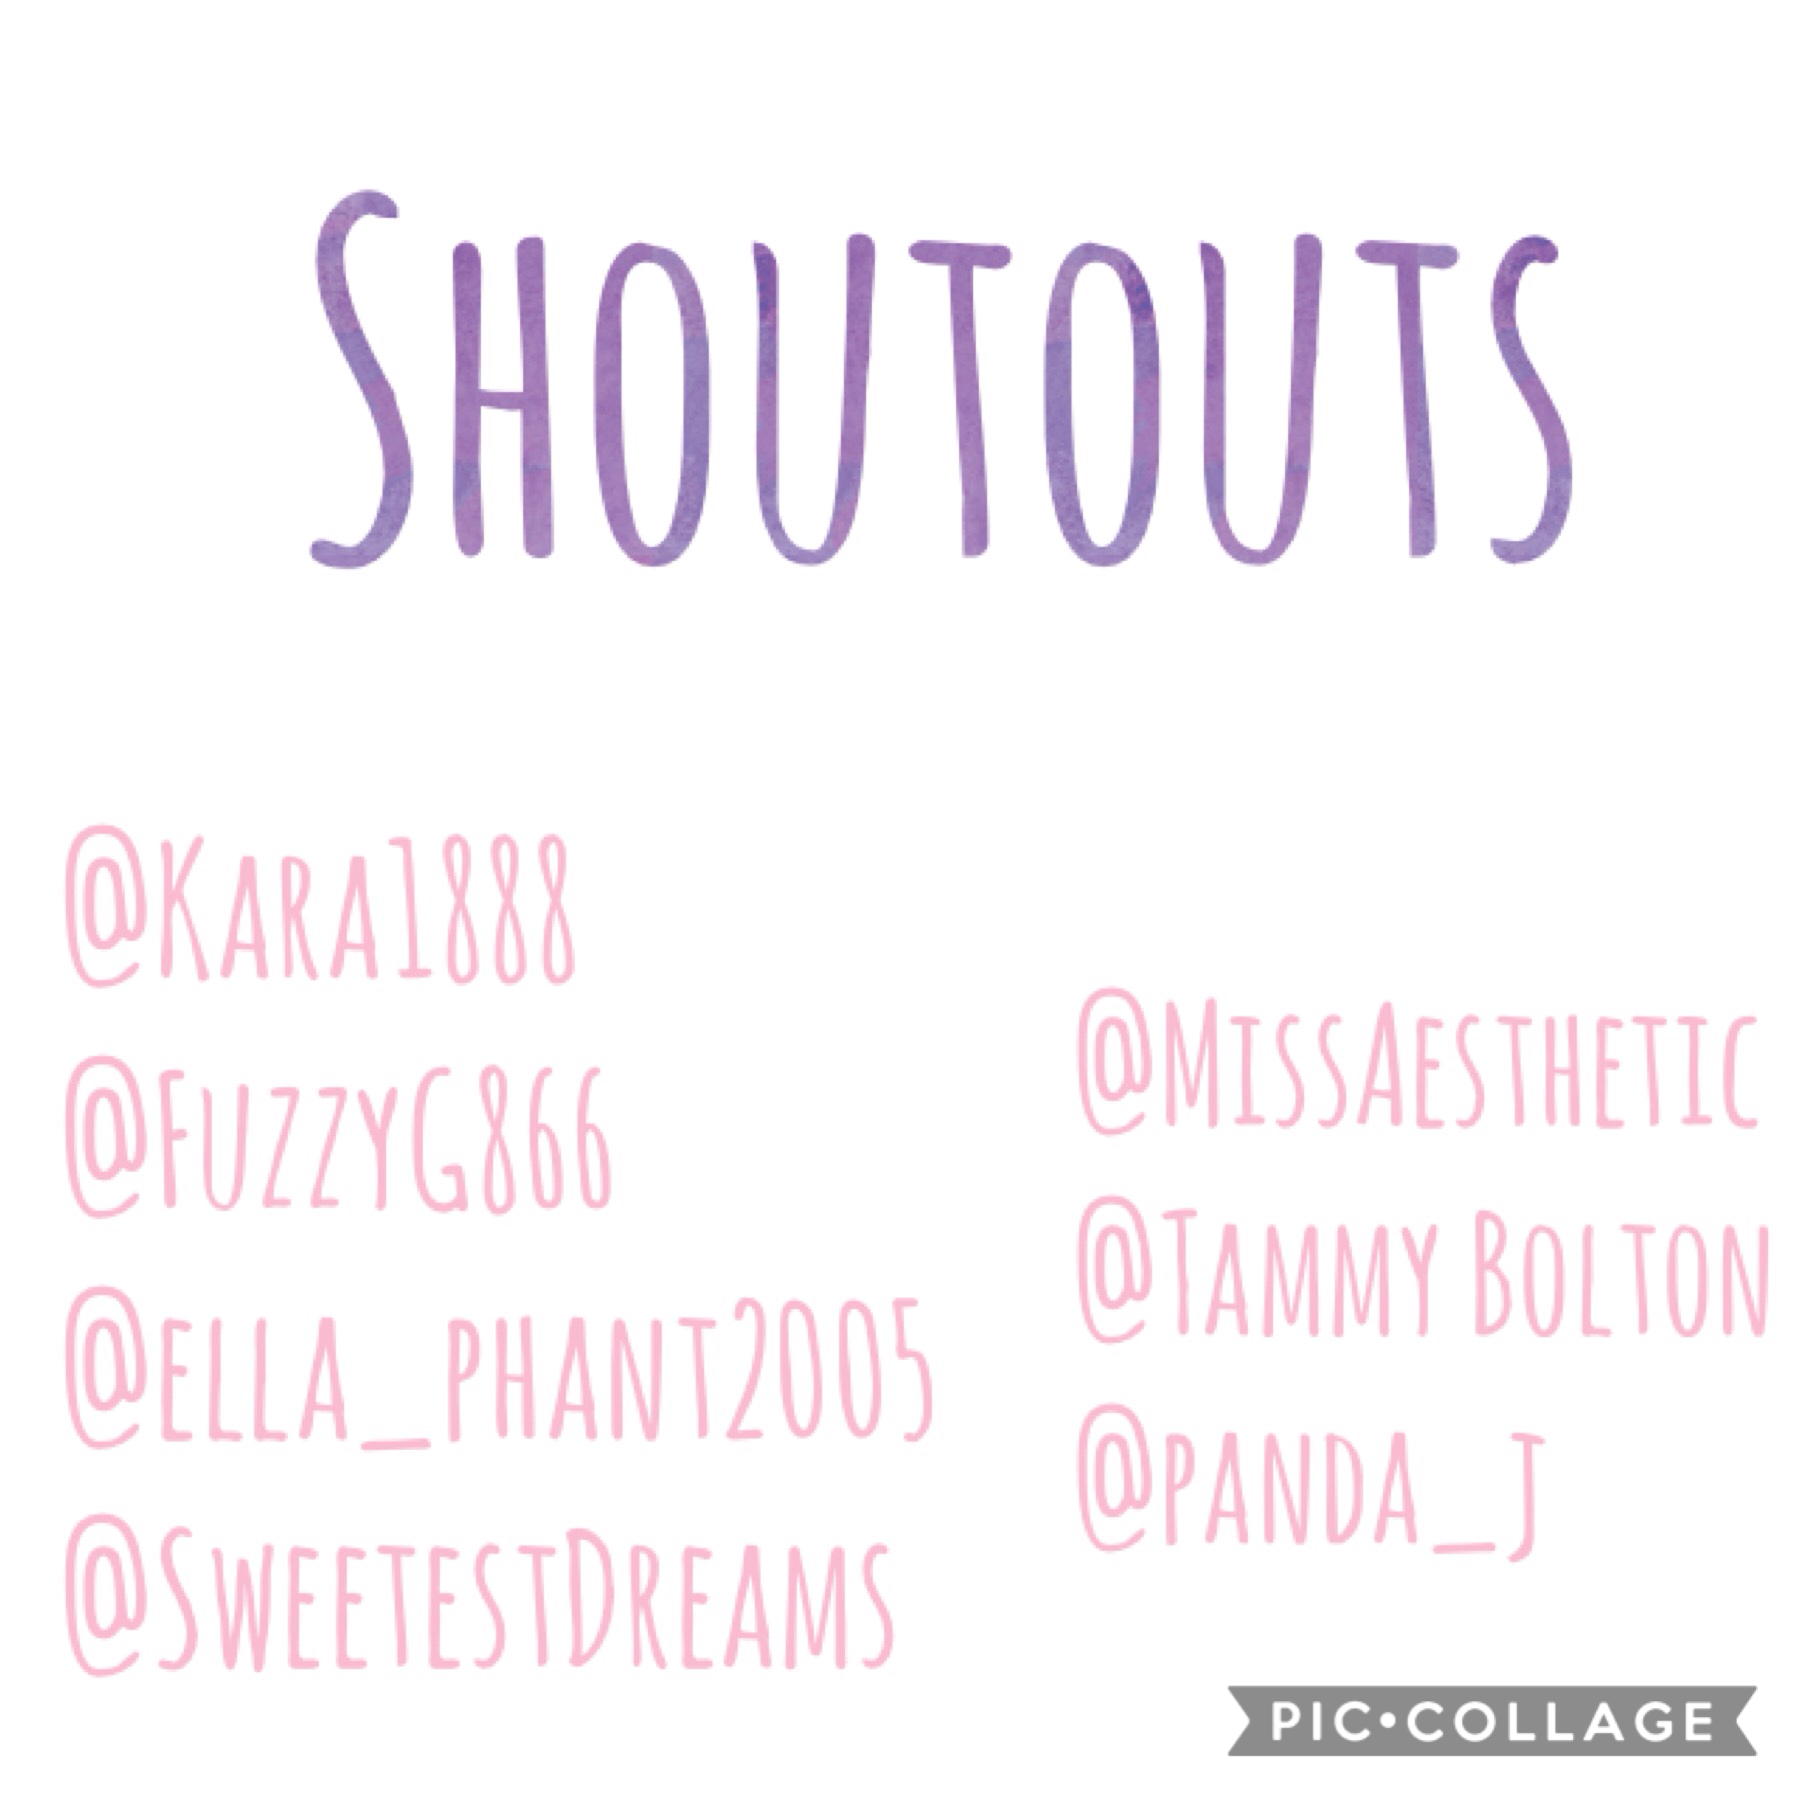 #taptap 💫✨⭐️ #shoutouts make sure to follow all these amazing people!! 💖💖